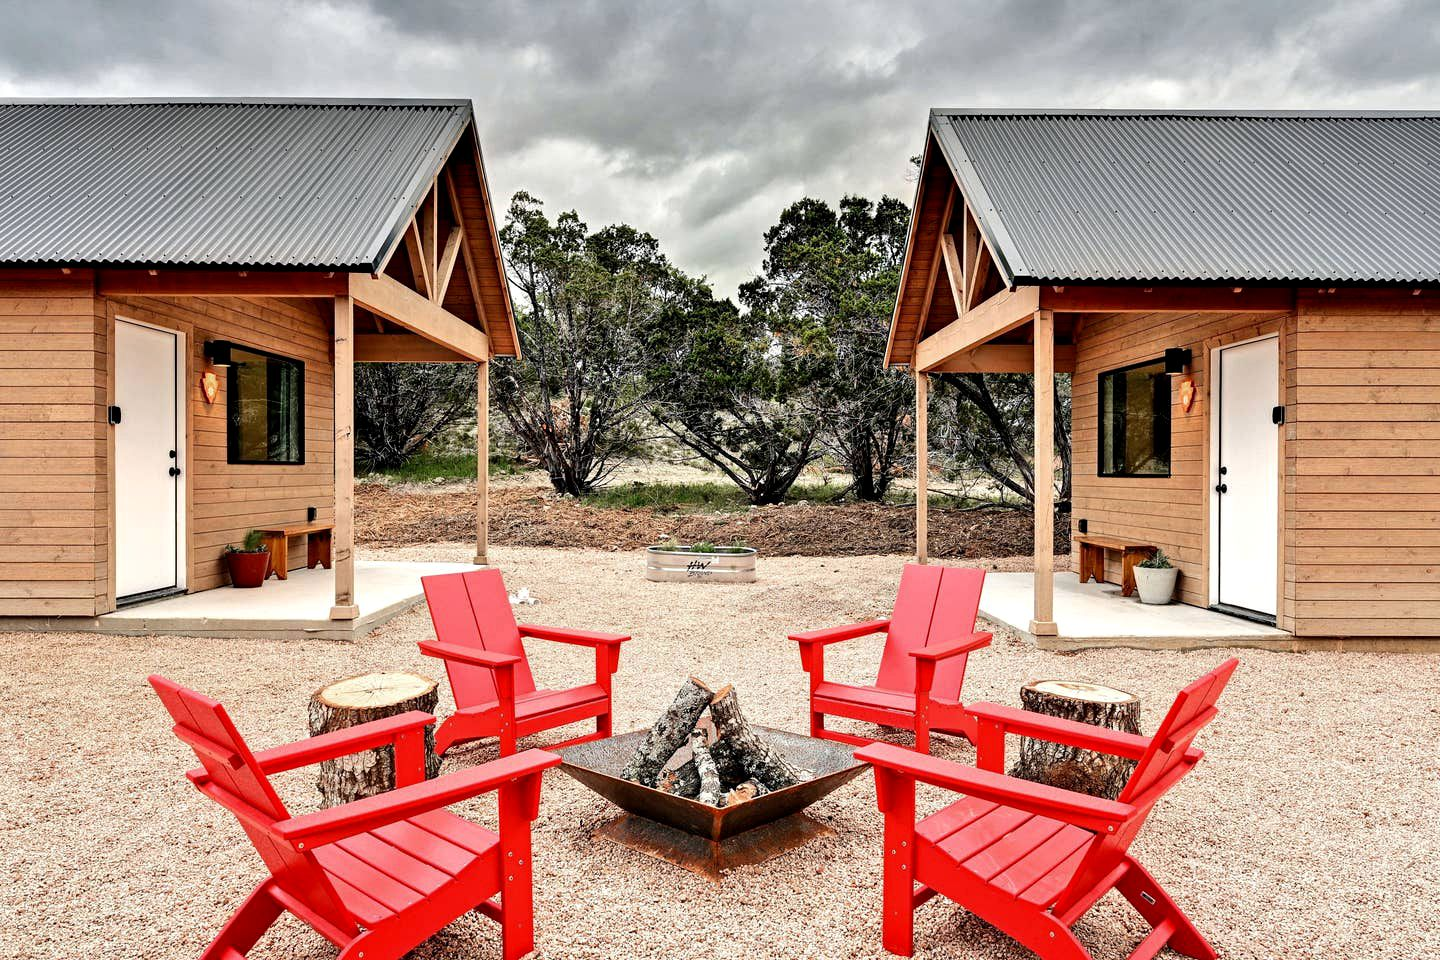 These Texas Hill Country cabins are simply gorgeous and boast a fire pit, perfect for romantic getaways near Austin!